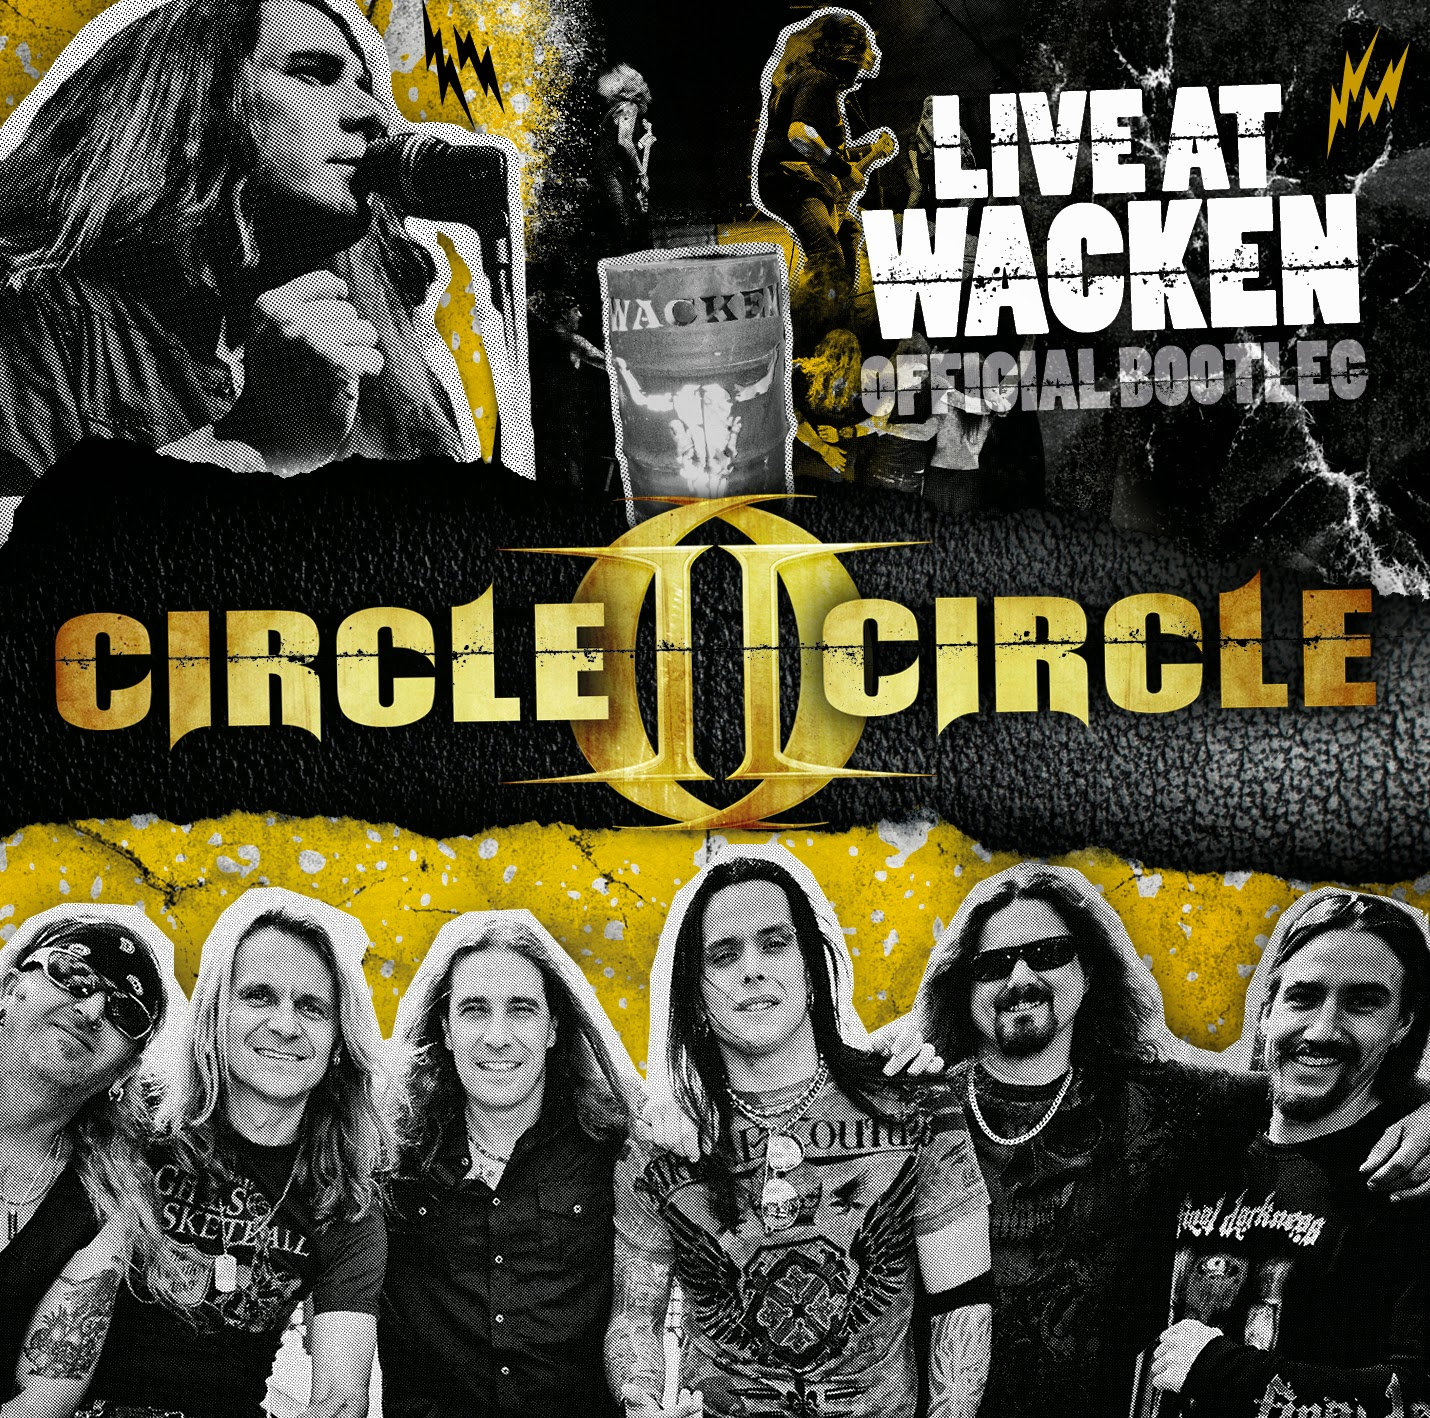 Circle+II+Circle_Live+At+Wacken+%28Official+Bootleg%29_Cover_hires